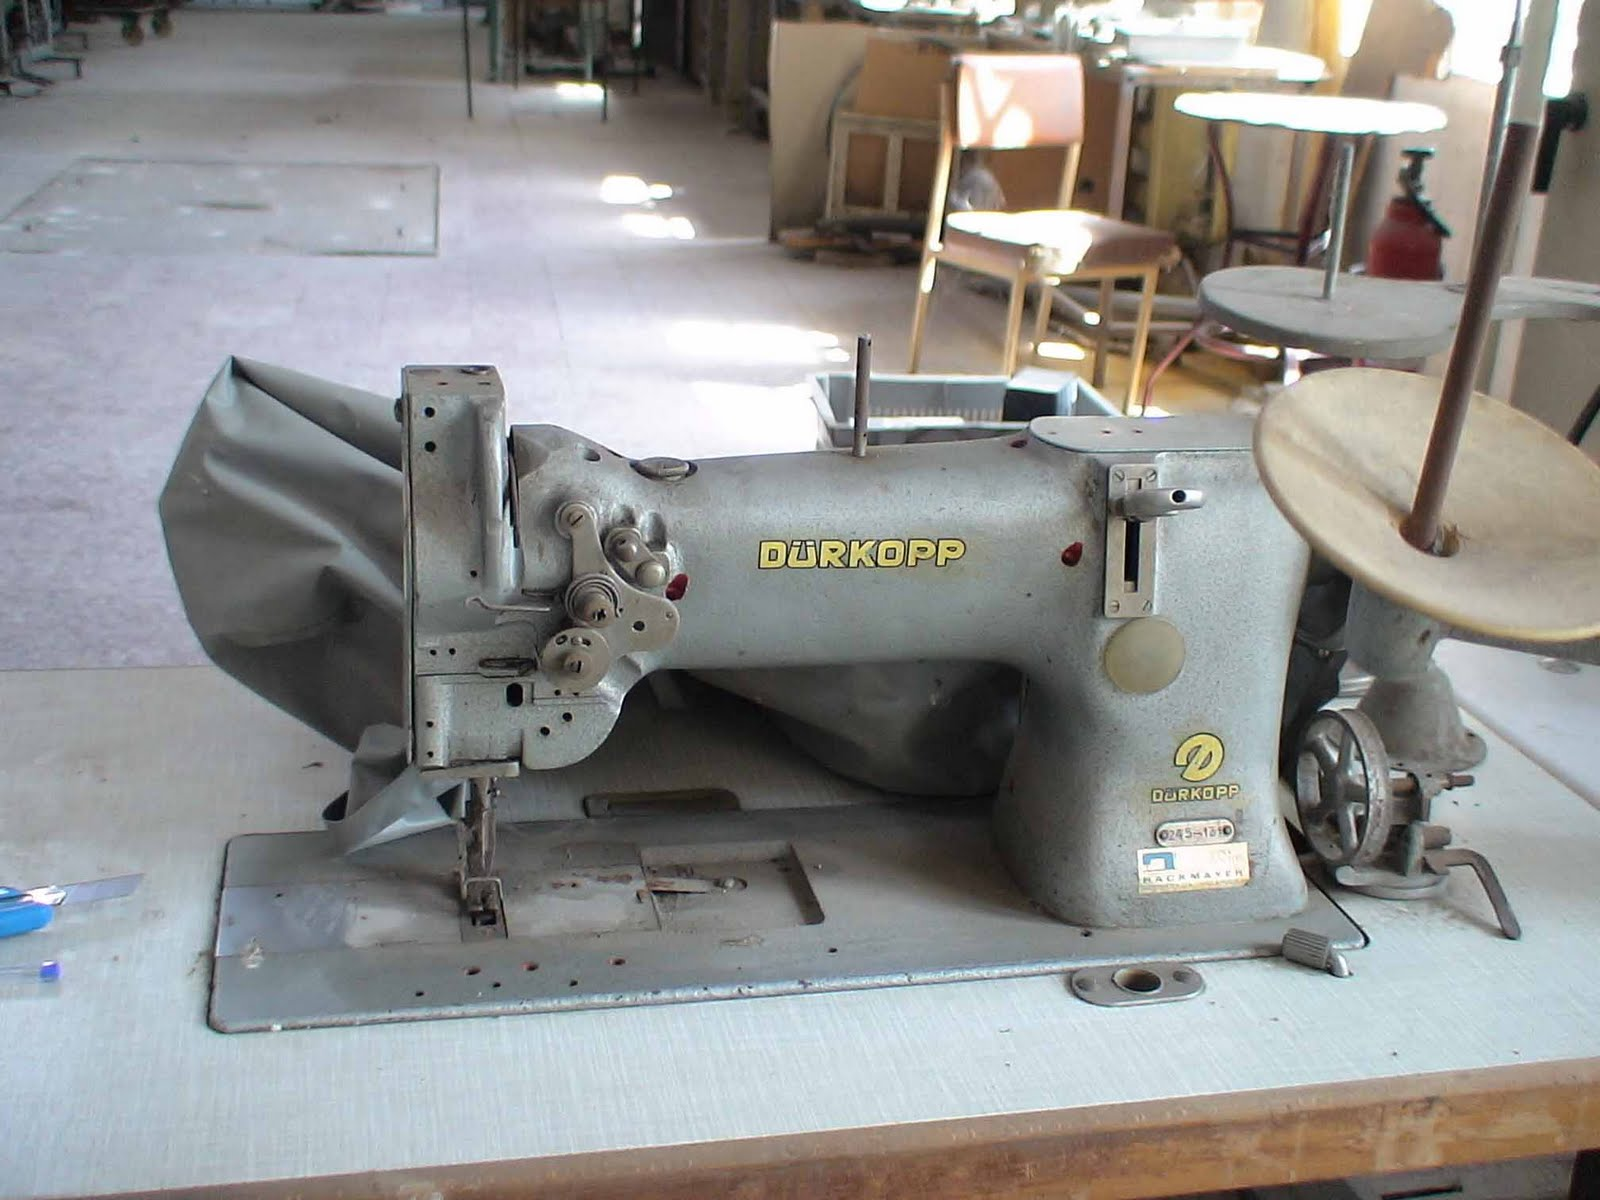 Durkopp Adler Sewing Machine Parts http://durkopp.blogspot.com/2011/06/durkopp-sewing-machines-26-139.html